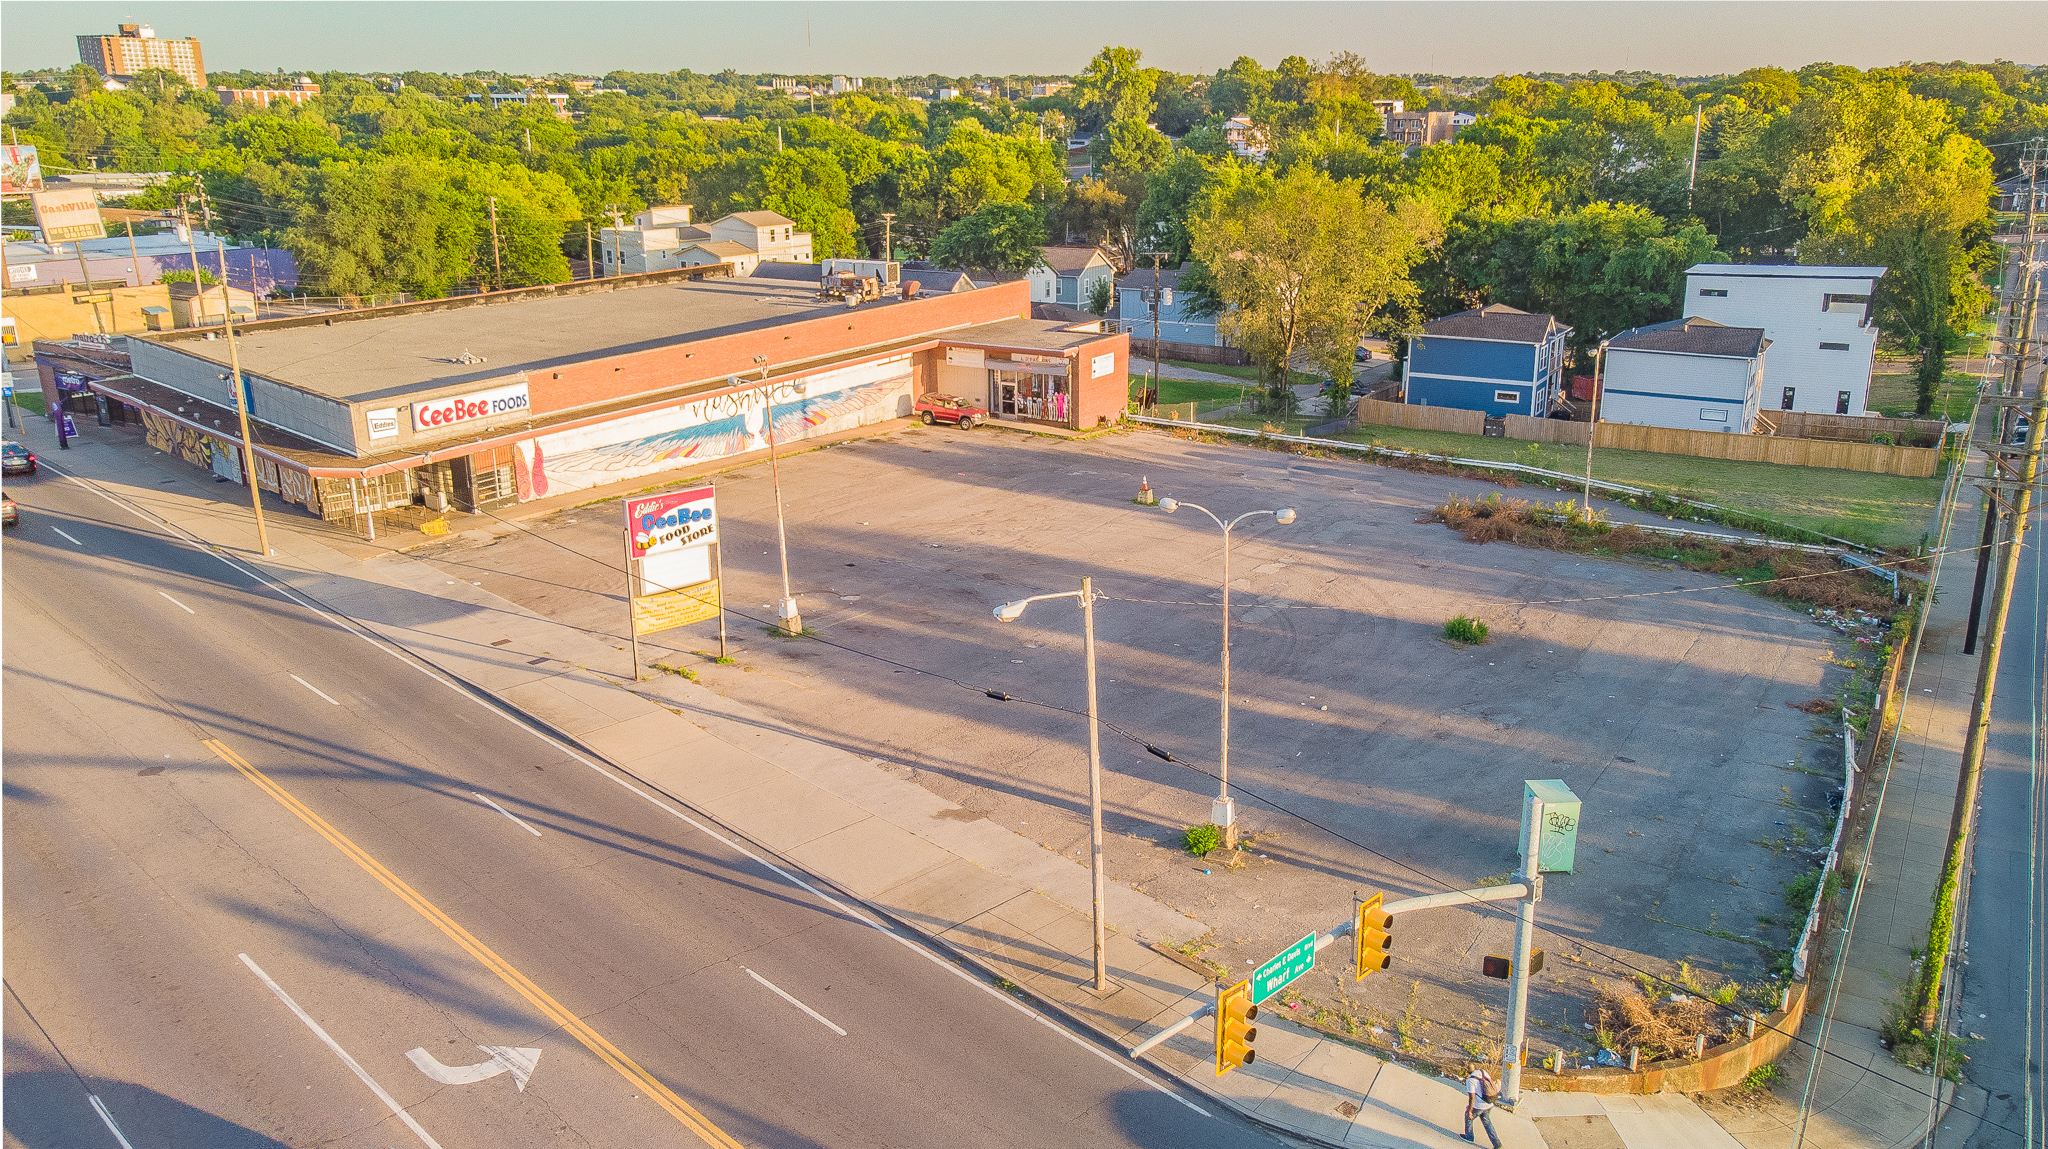 105 lafayette street - NapierRetail, Flex13,424 sf on .71 acresWide open floor plan with tall ceilings and a loading dock. ~60 surface parking spots and strong interstate access through the downtown loop.